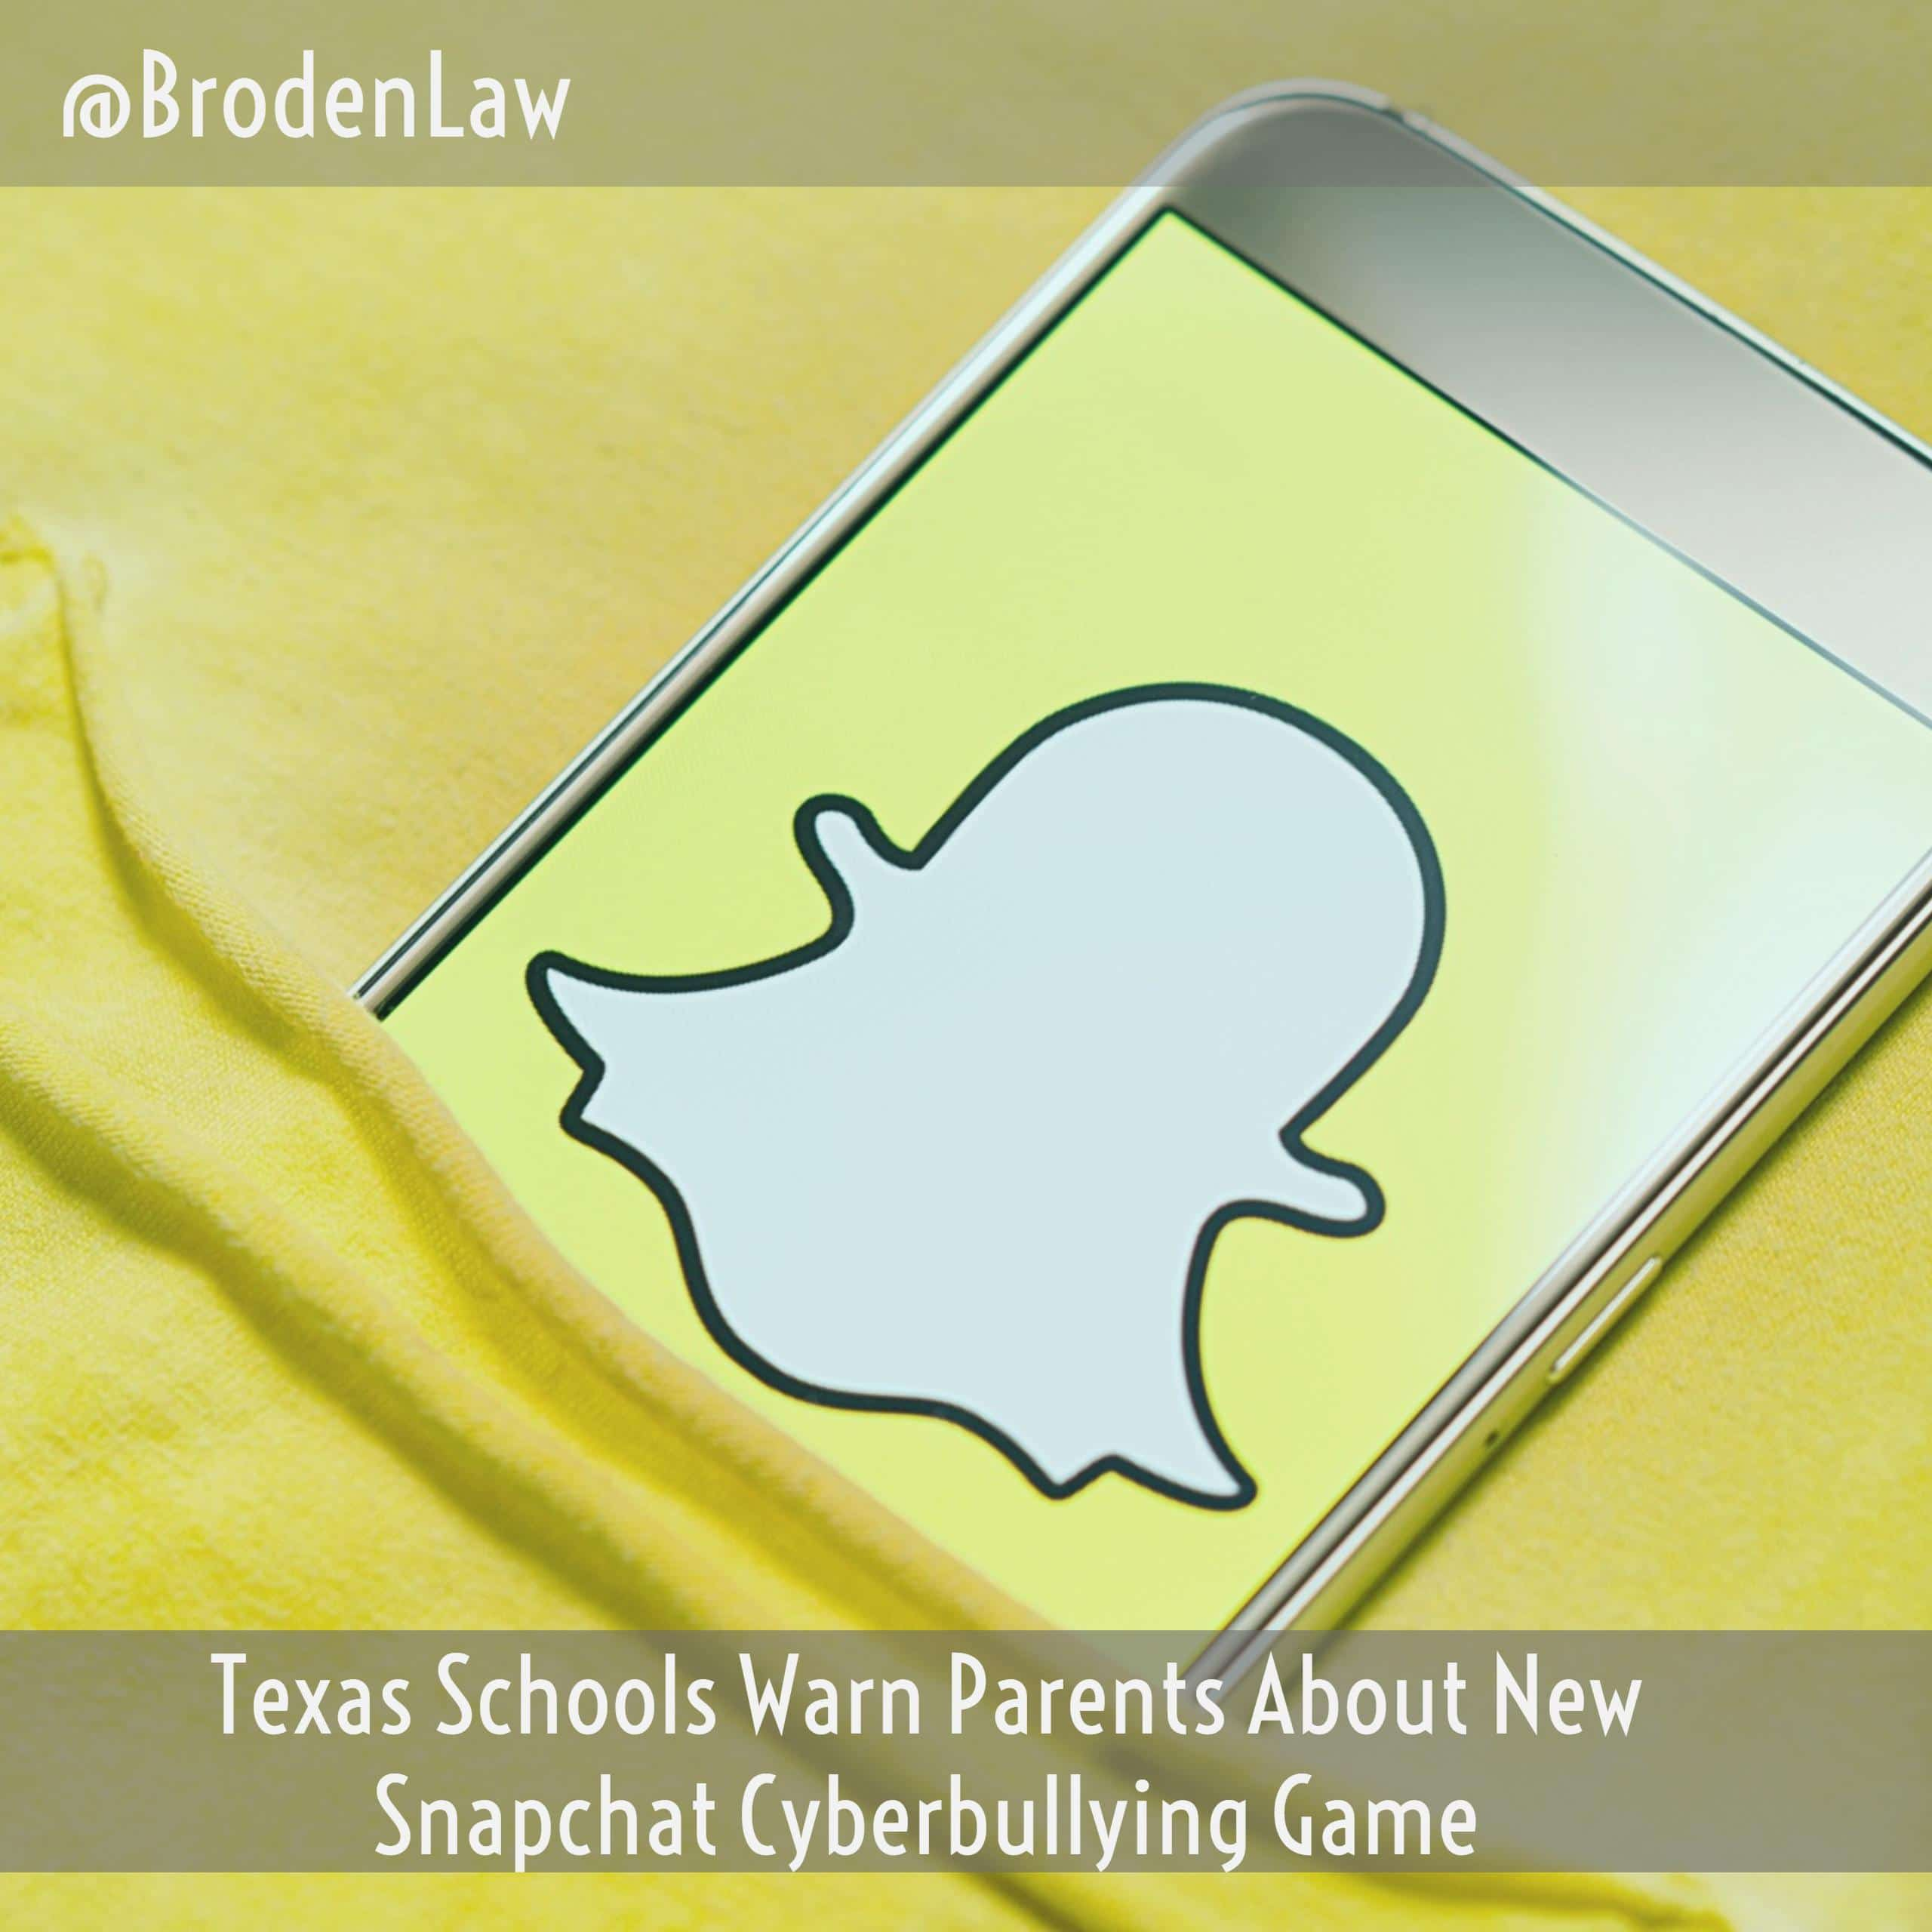 How to report cyberbullying on snapchat